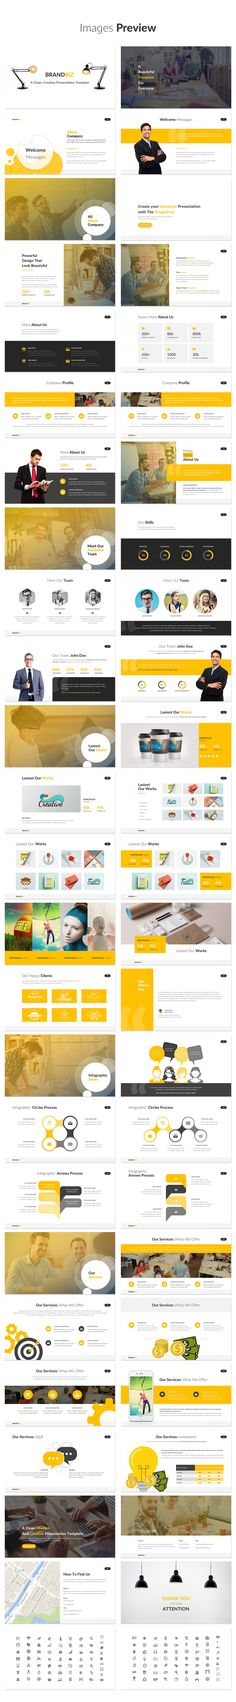 BrandBiz Powerpoint Template (PowerPoint Templates)